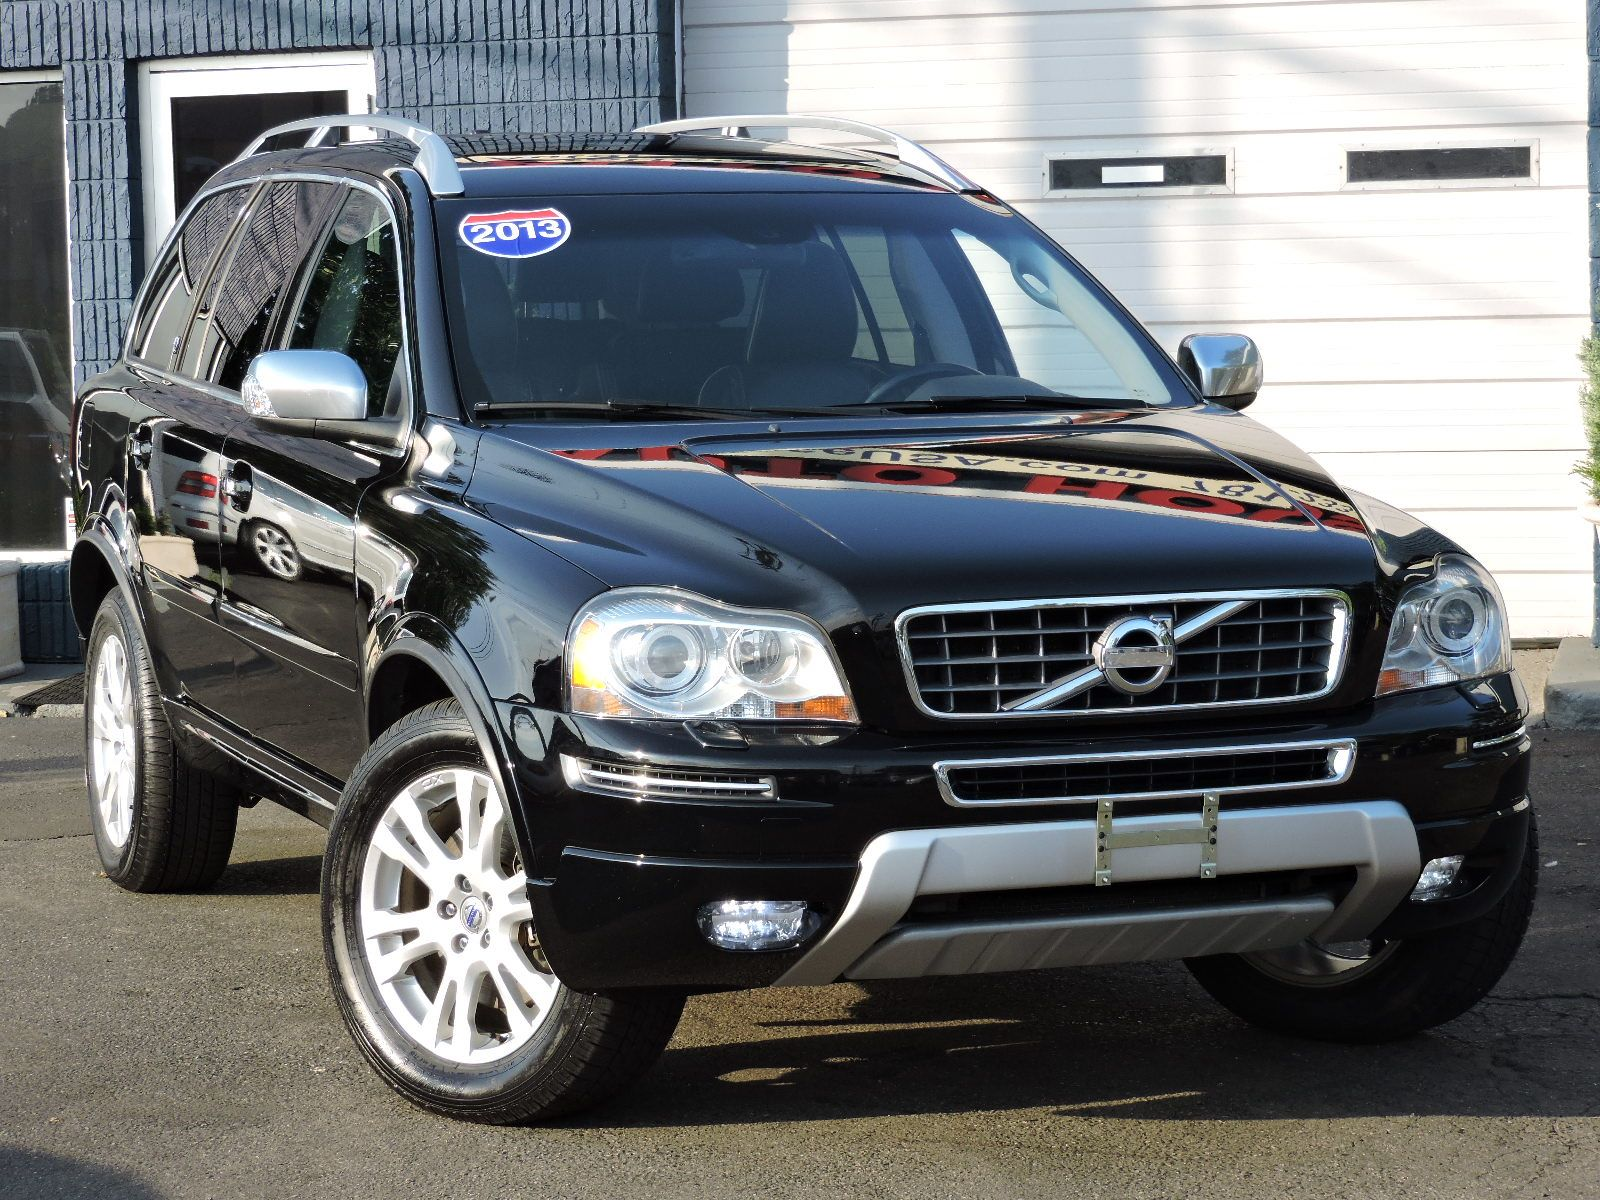 2013 Volvo XC90 Premier Plus 3.2 - All Wheel Drive